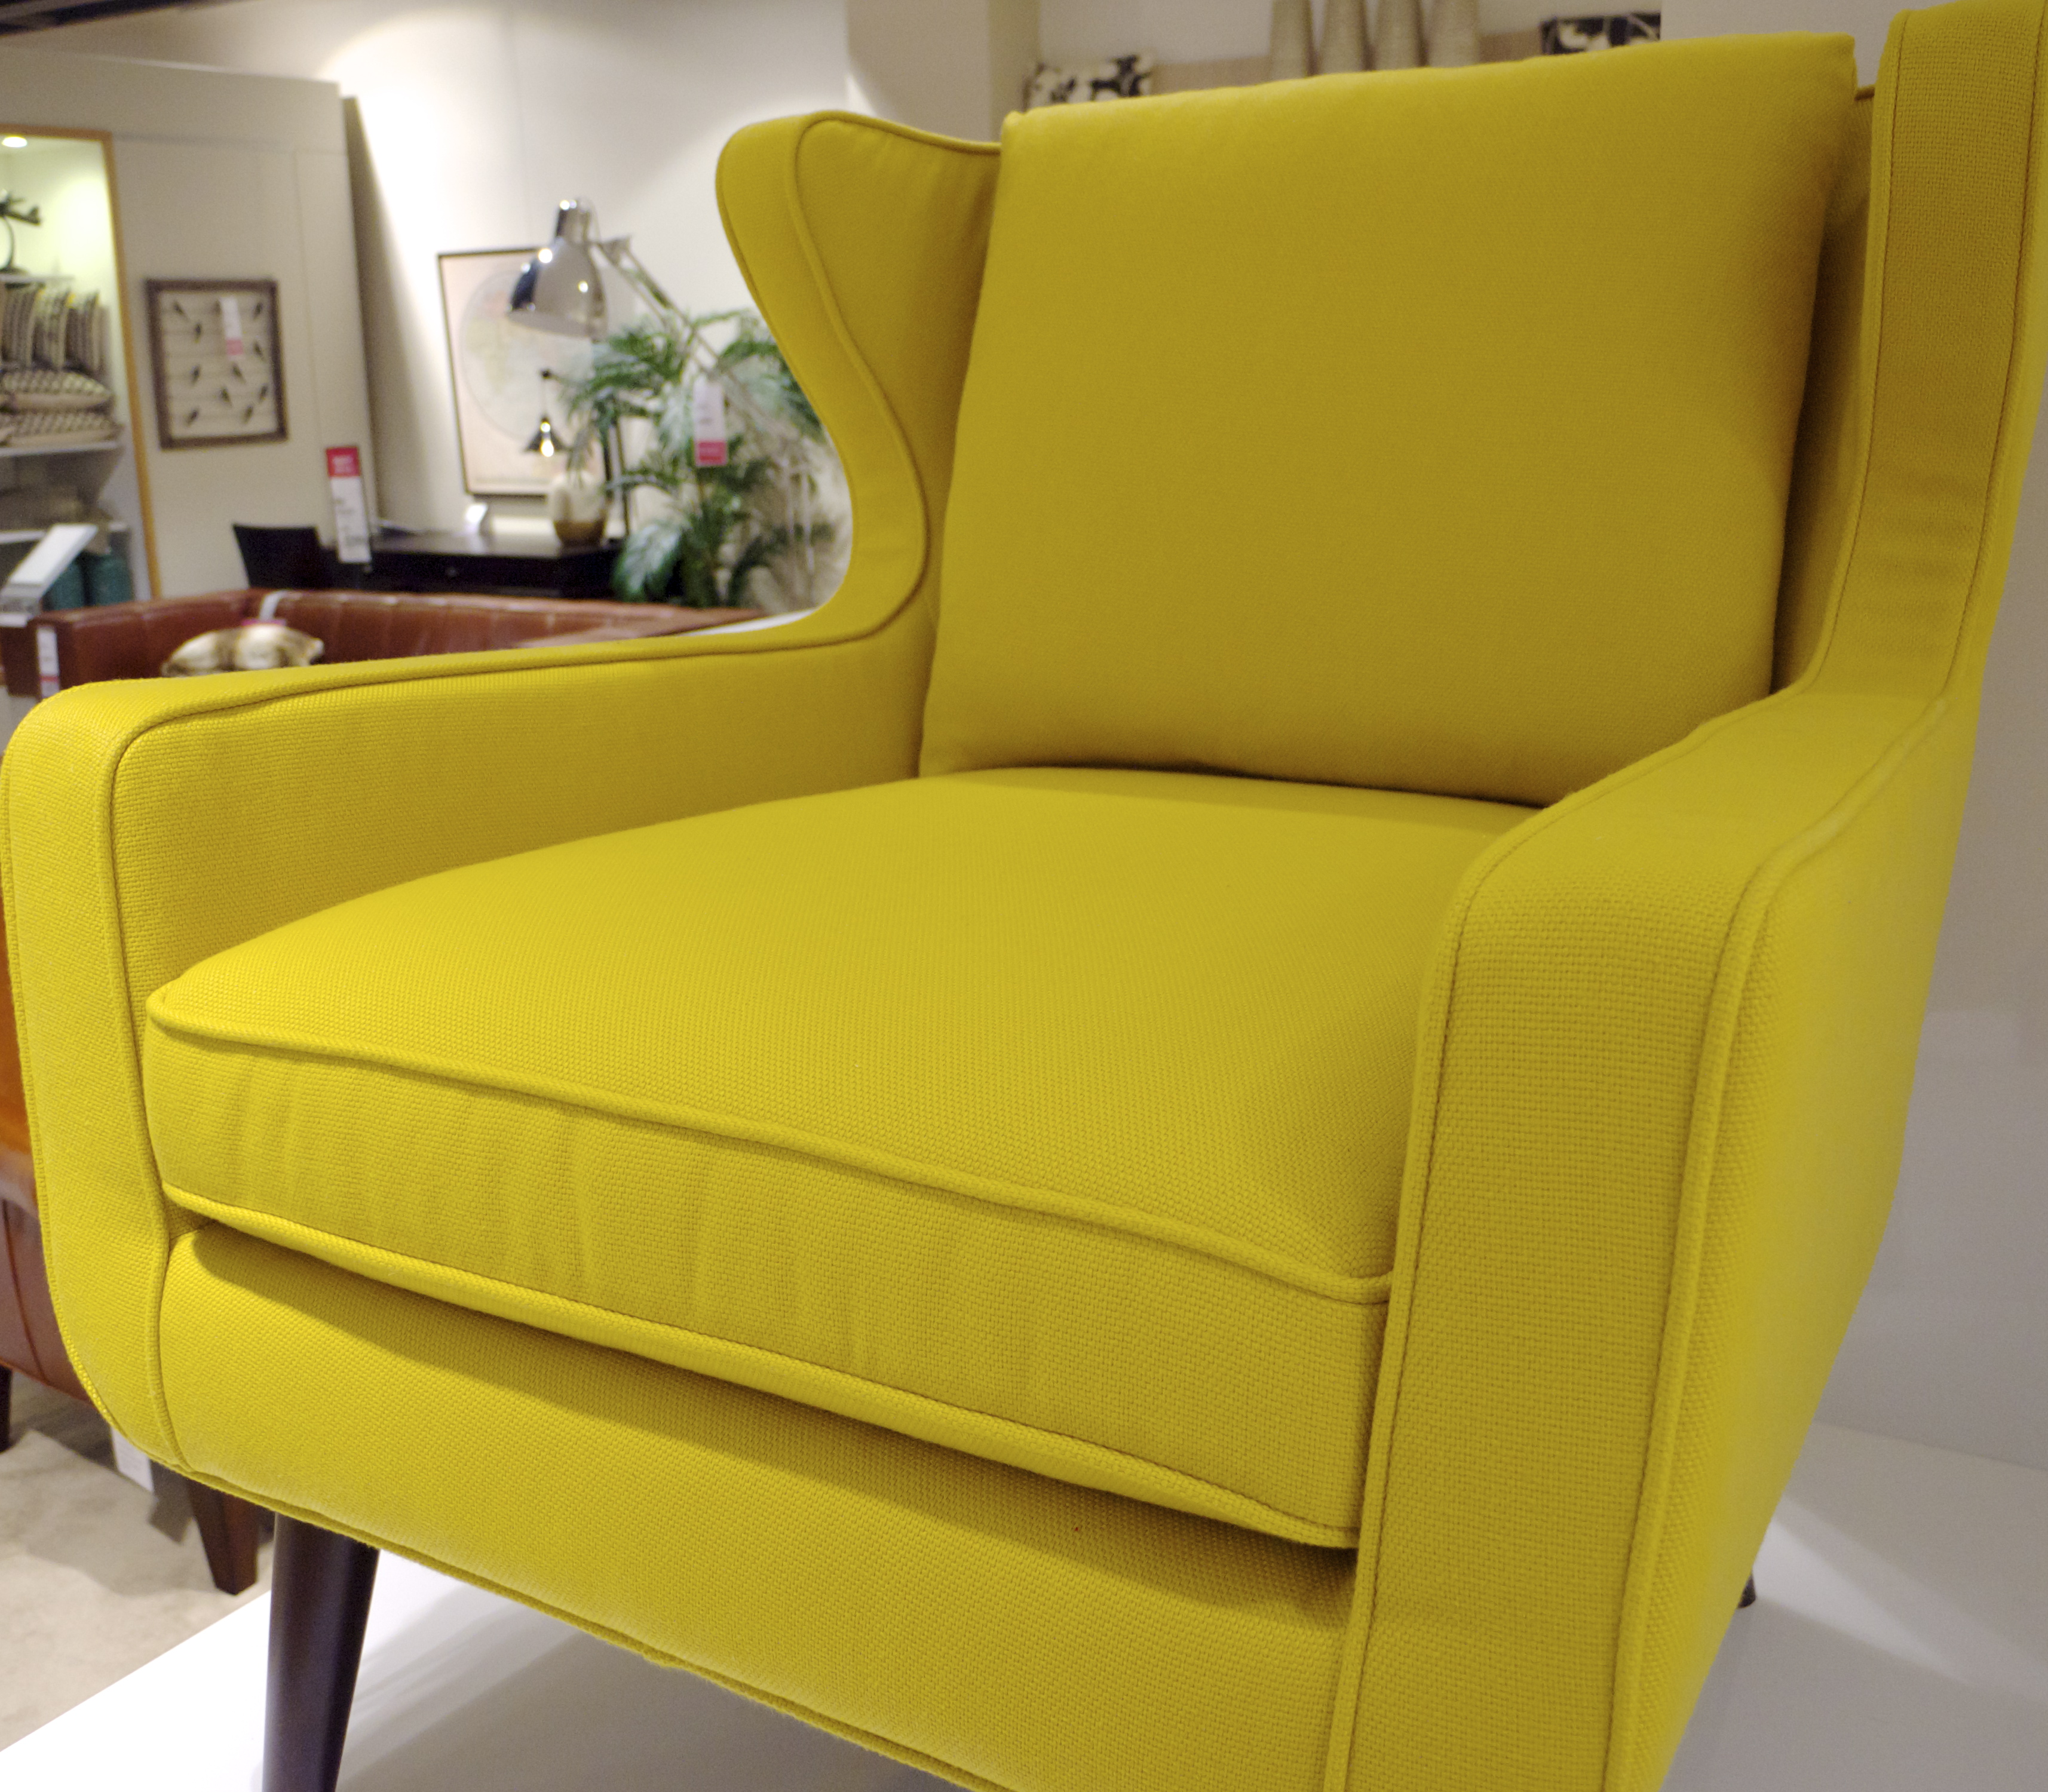 Freedom Top Ryde - Yellow Armchair